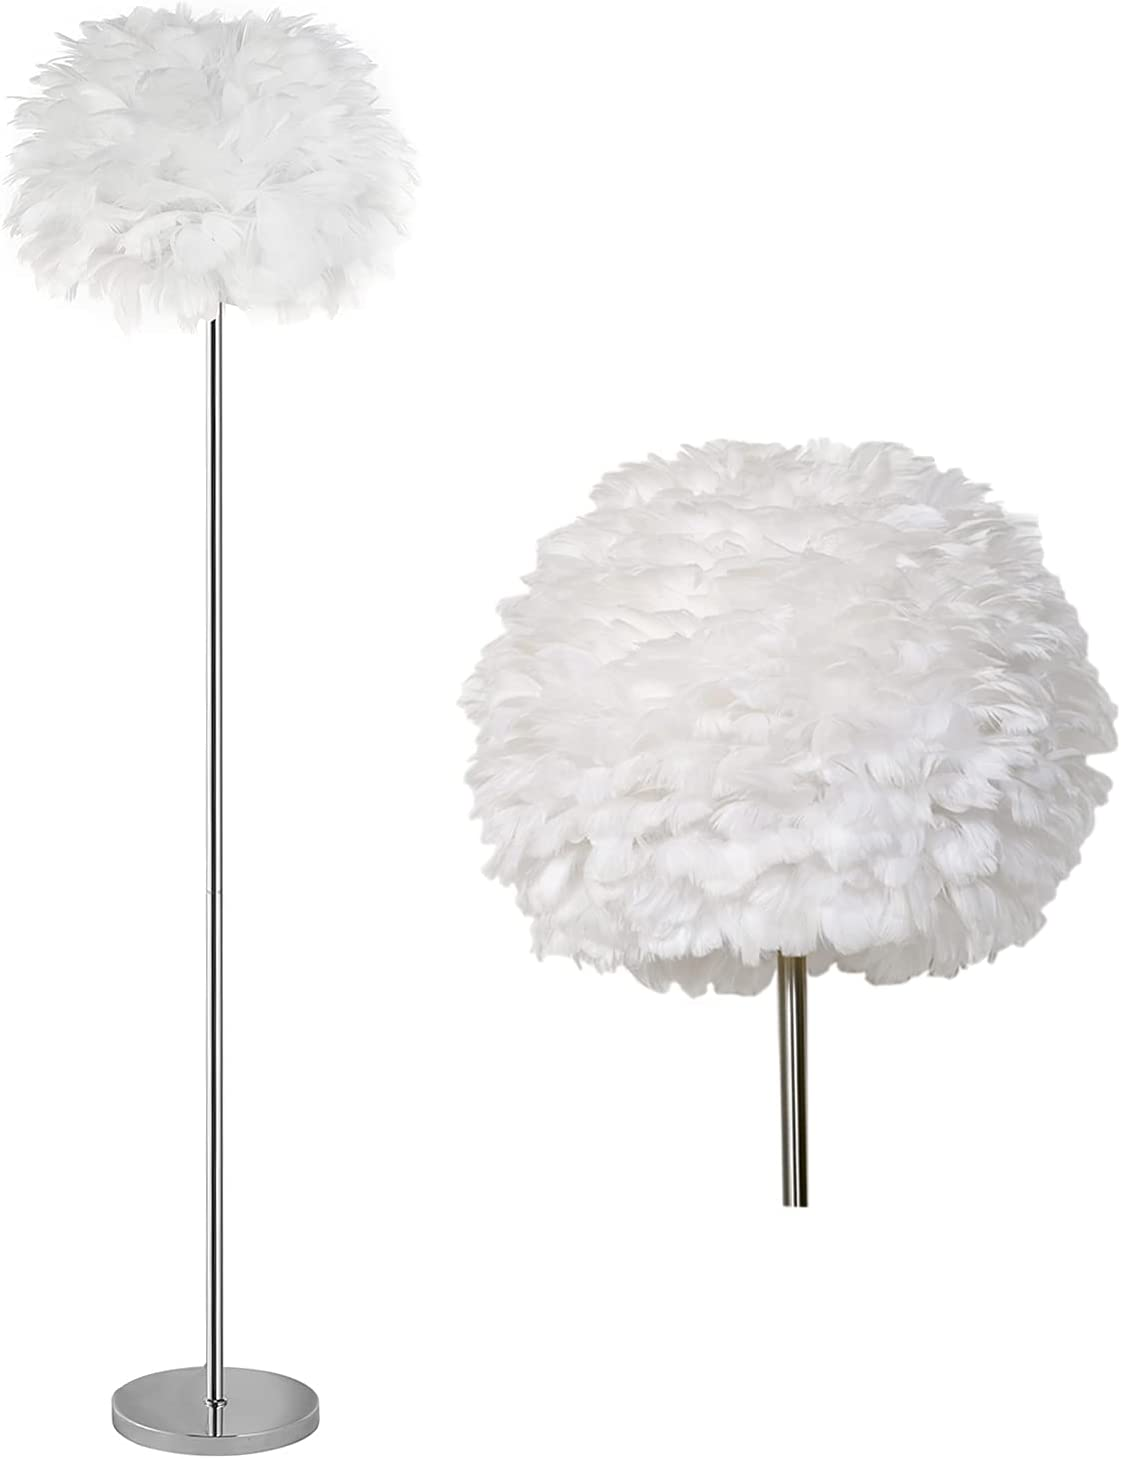 Ranking TOP15 VECELO Feather Floor OFFicial site Lamp with Morden Light Standing 3000k Bulb